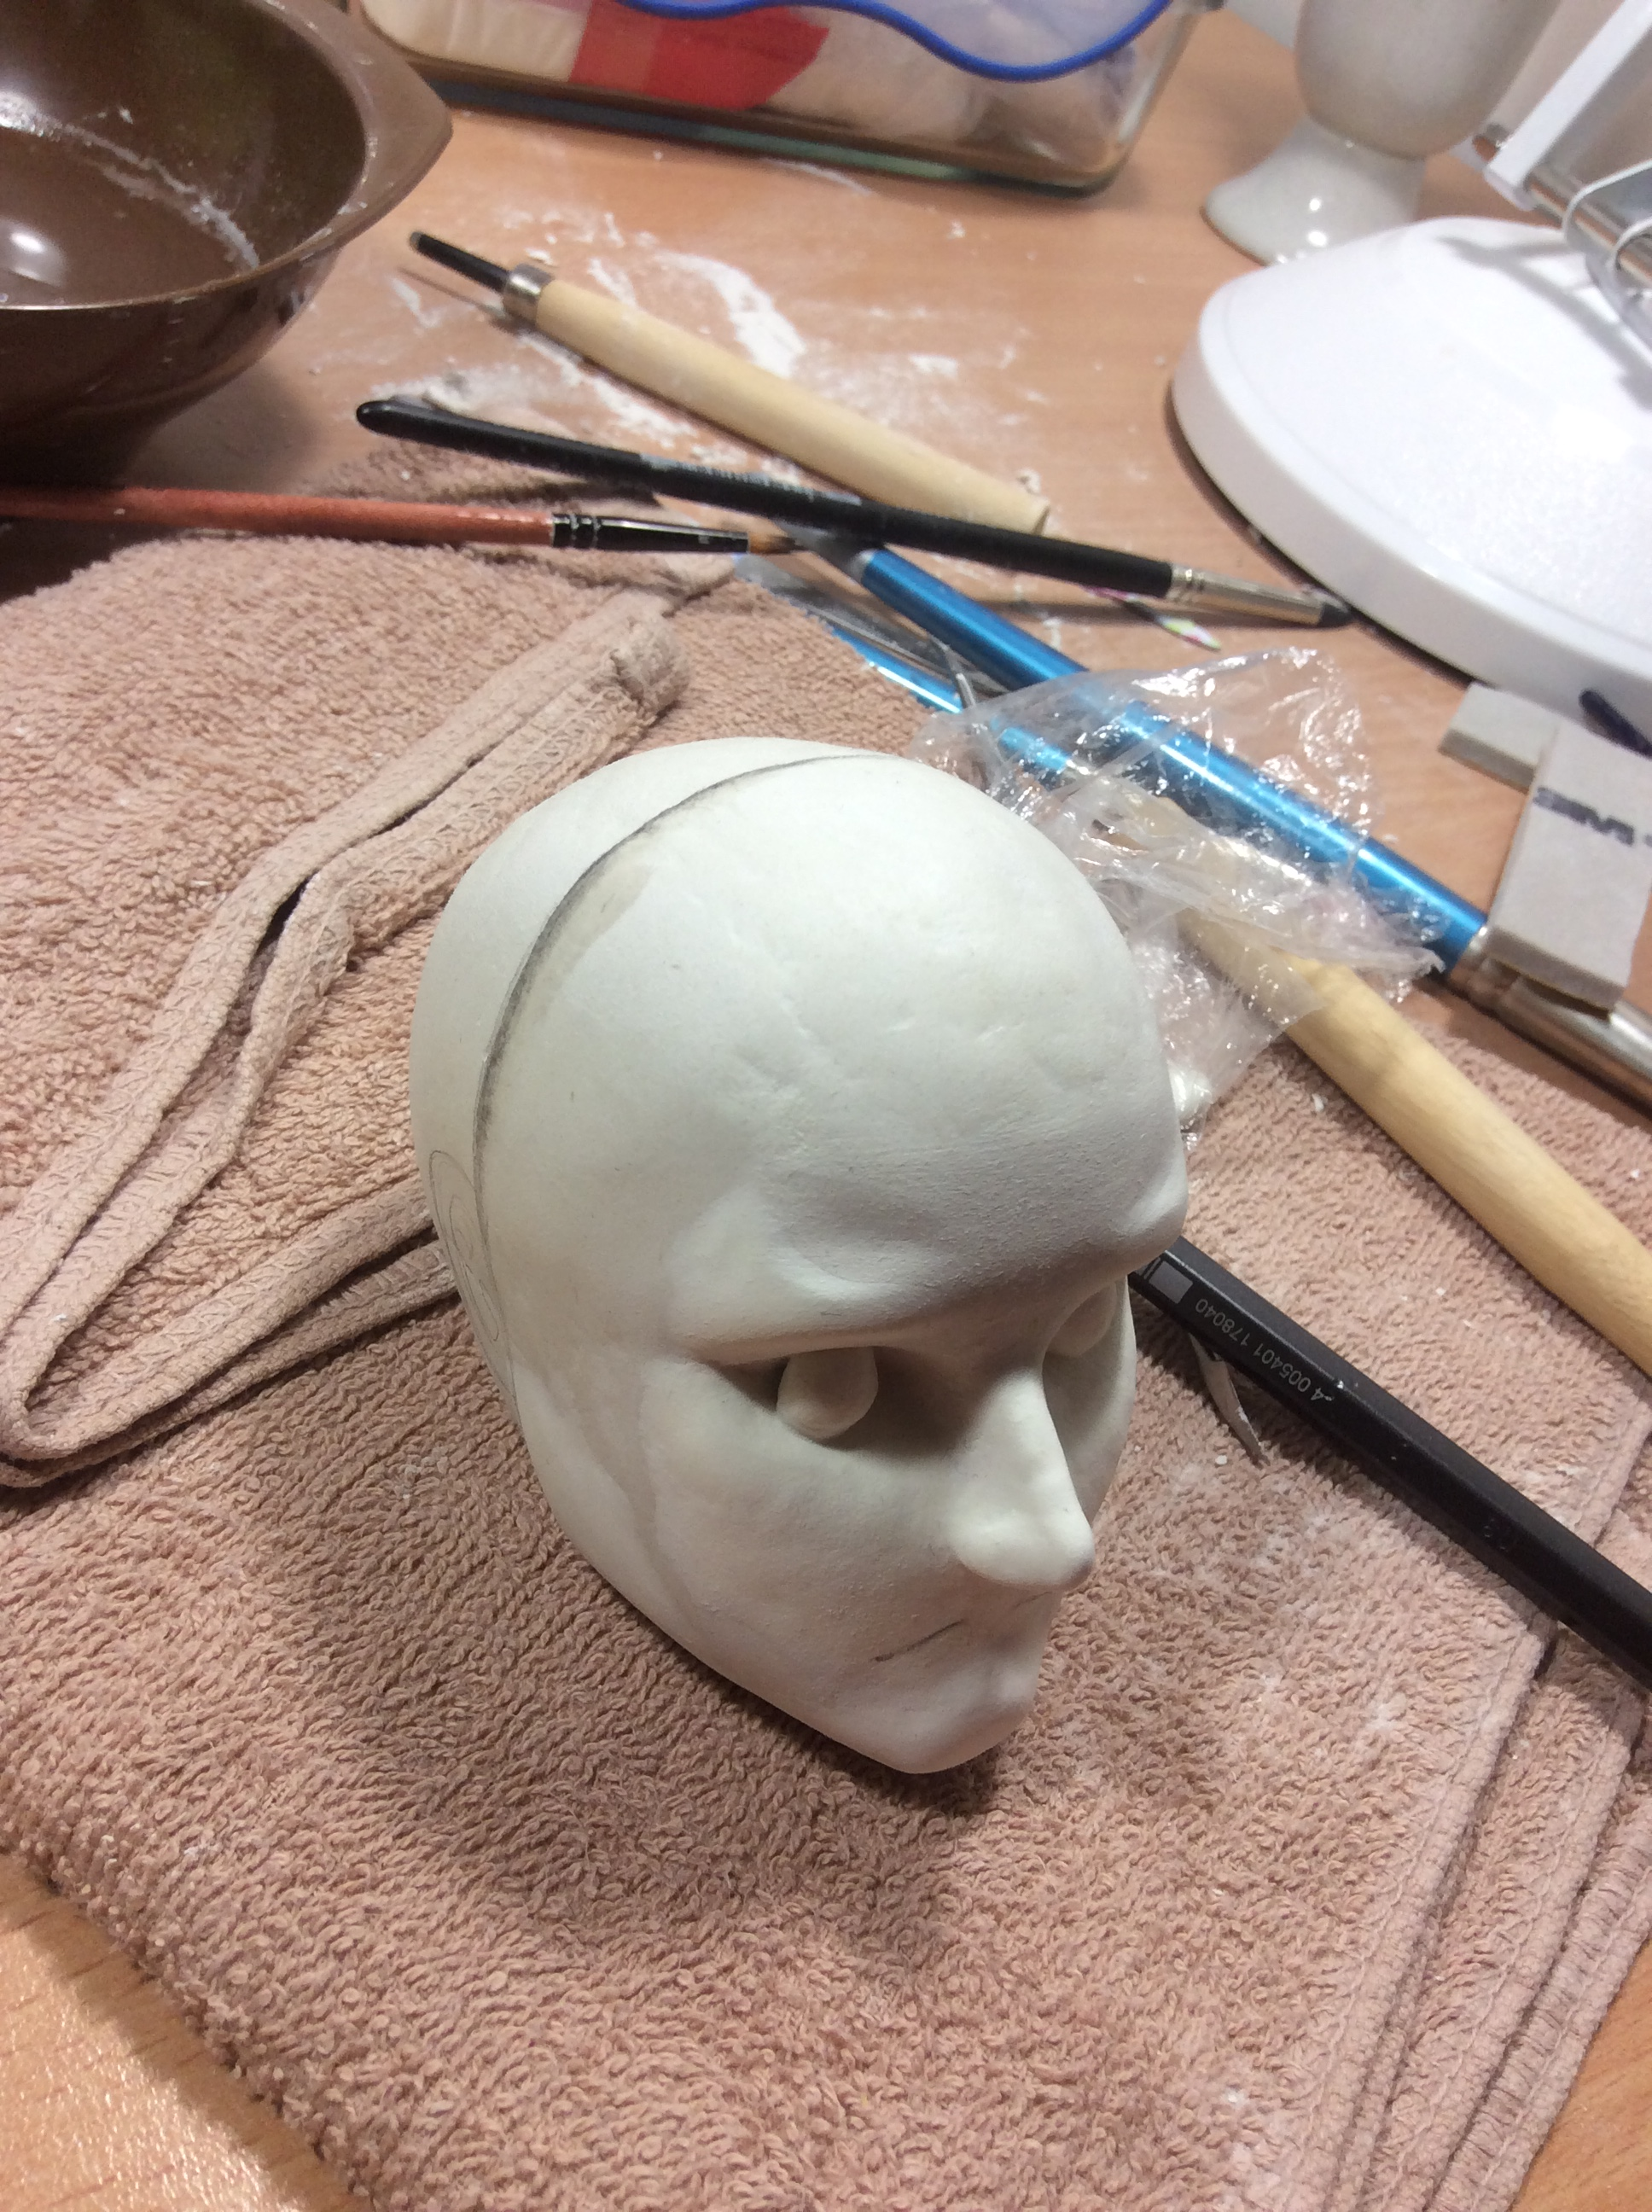 jemse---my-first-doll-head-making-progress-diary-part-2_32263276892_o